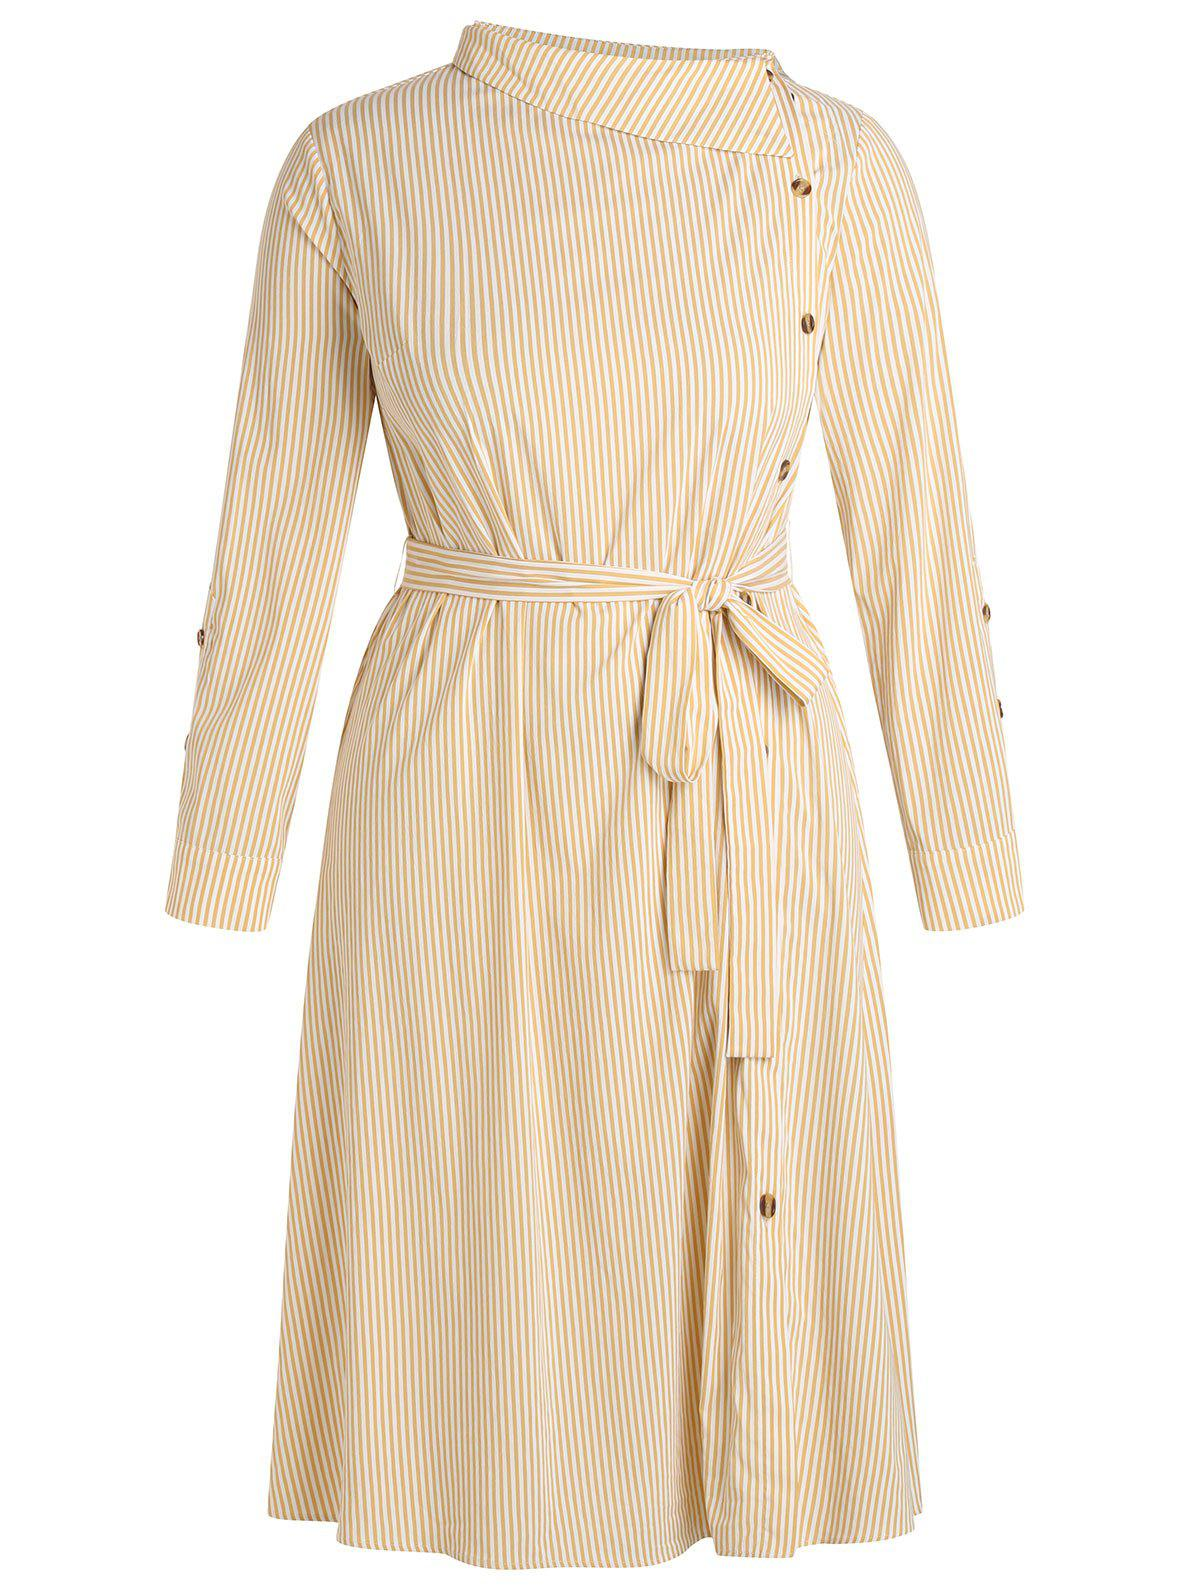 Plus Size Belted Long Sleeve Striped Dress - PEACH 1X